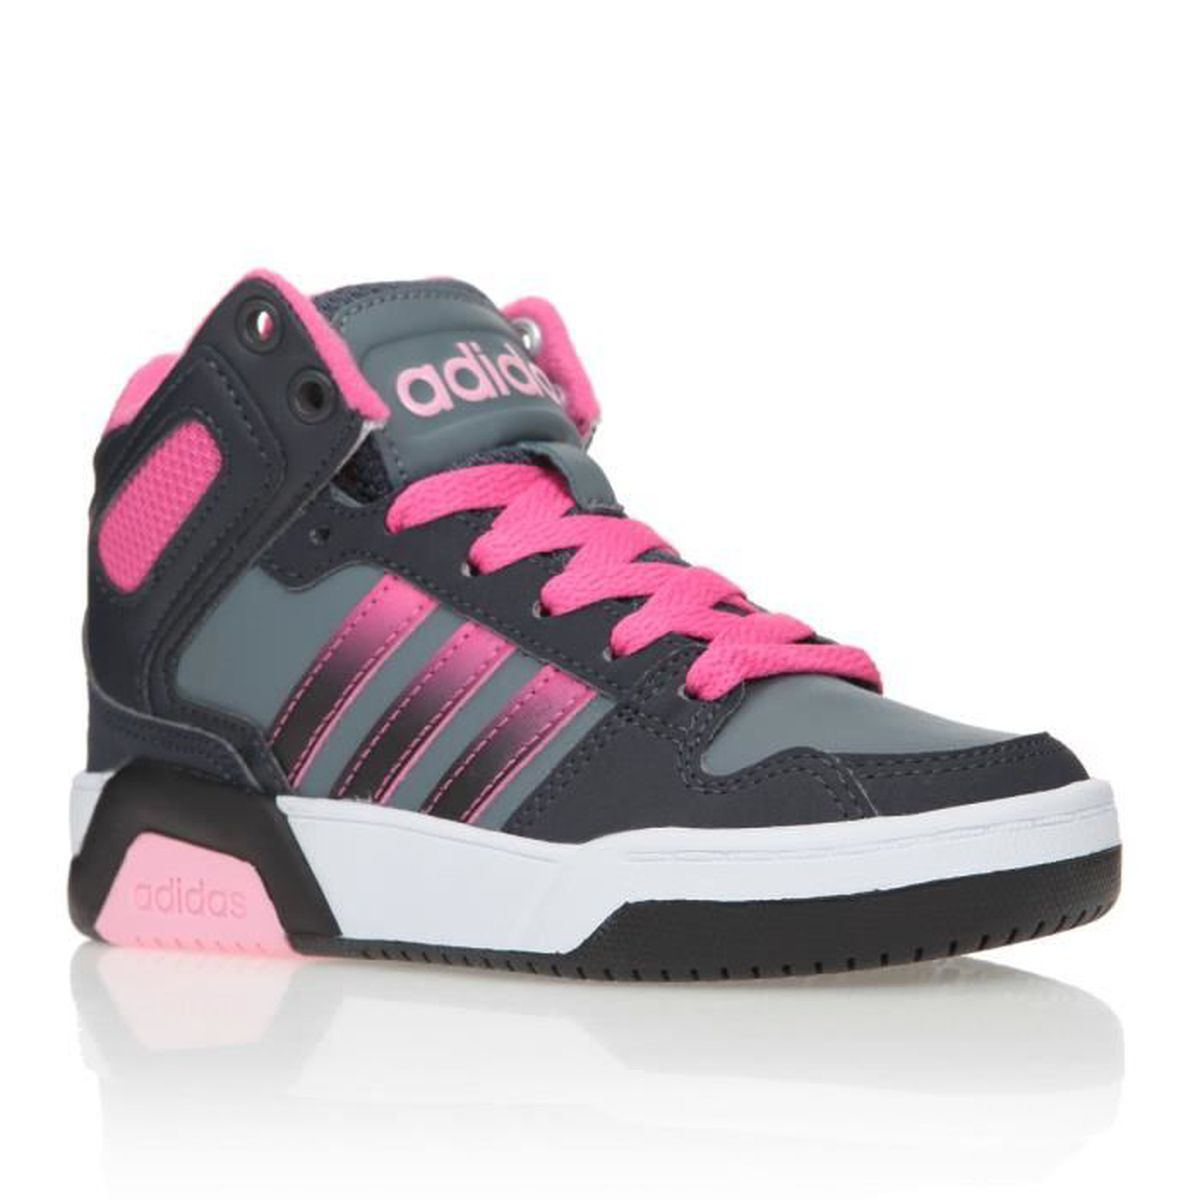 adidas neo baskets bb9tis chaussures enfant fille gris noir et rose achat vente basket. Black Bedroom Furniture Sets. Home Design Ideas